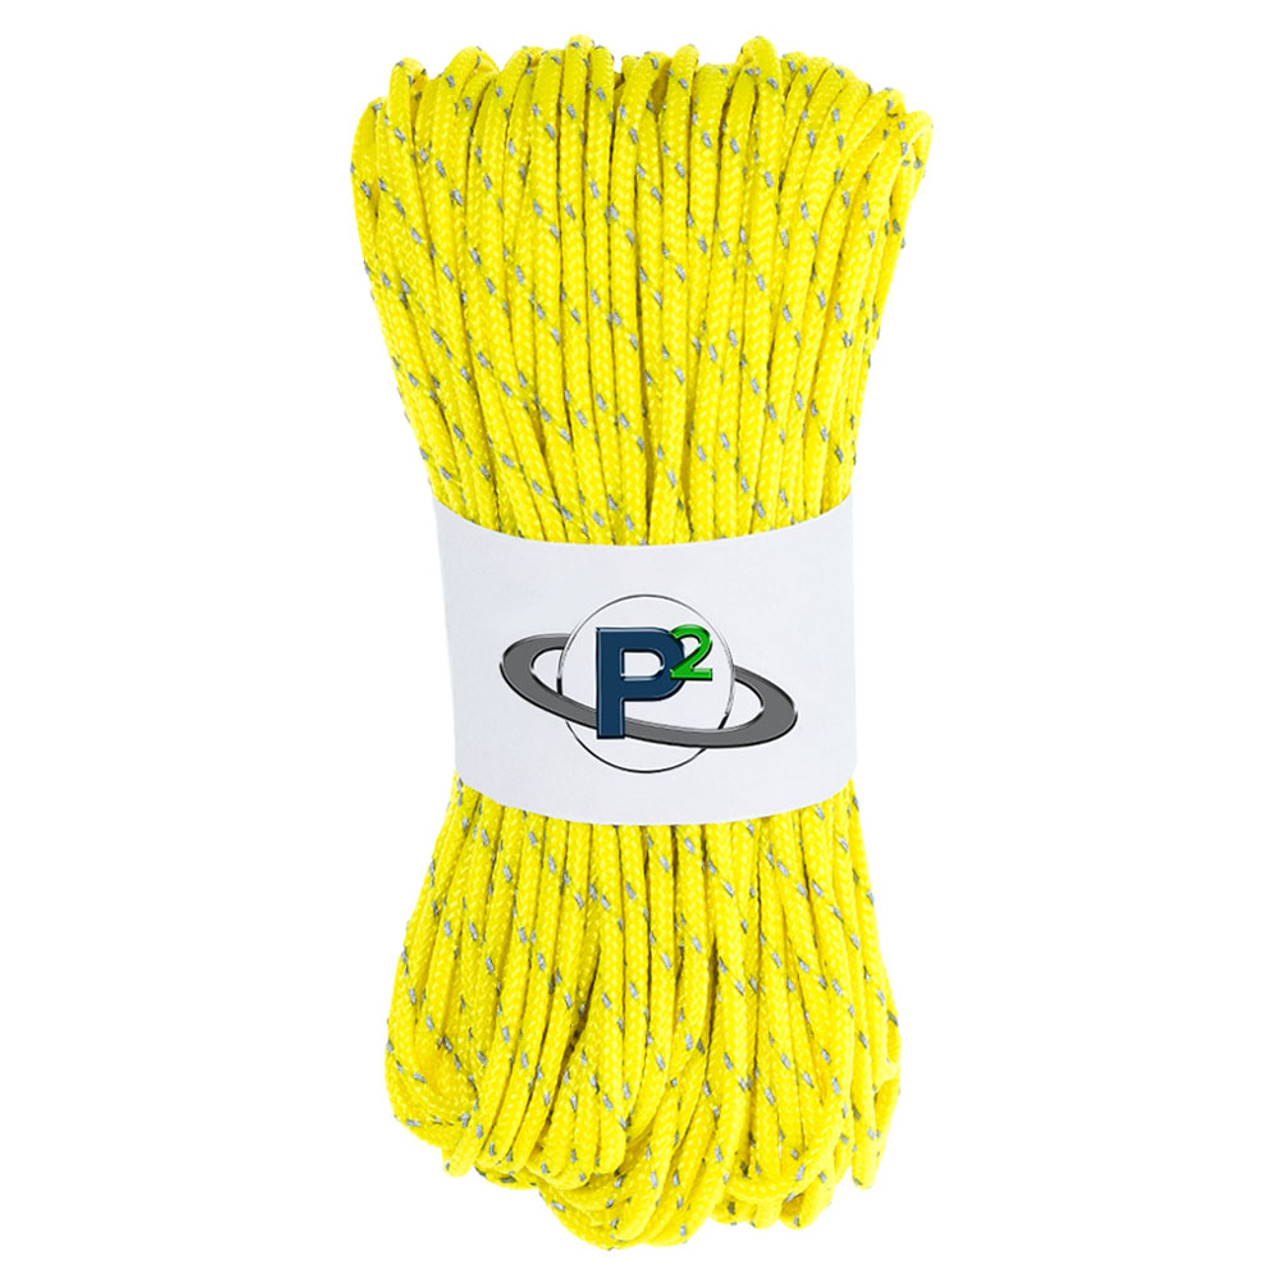 Neon Yellow - Reflective 95 Paracord - Spools